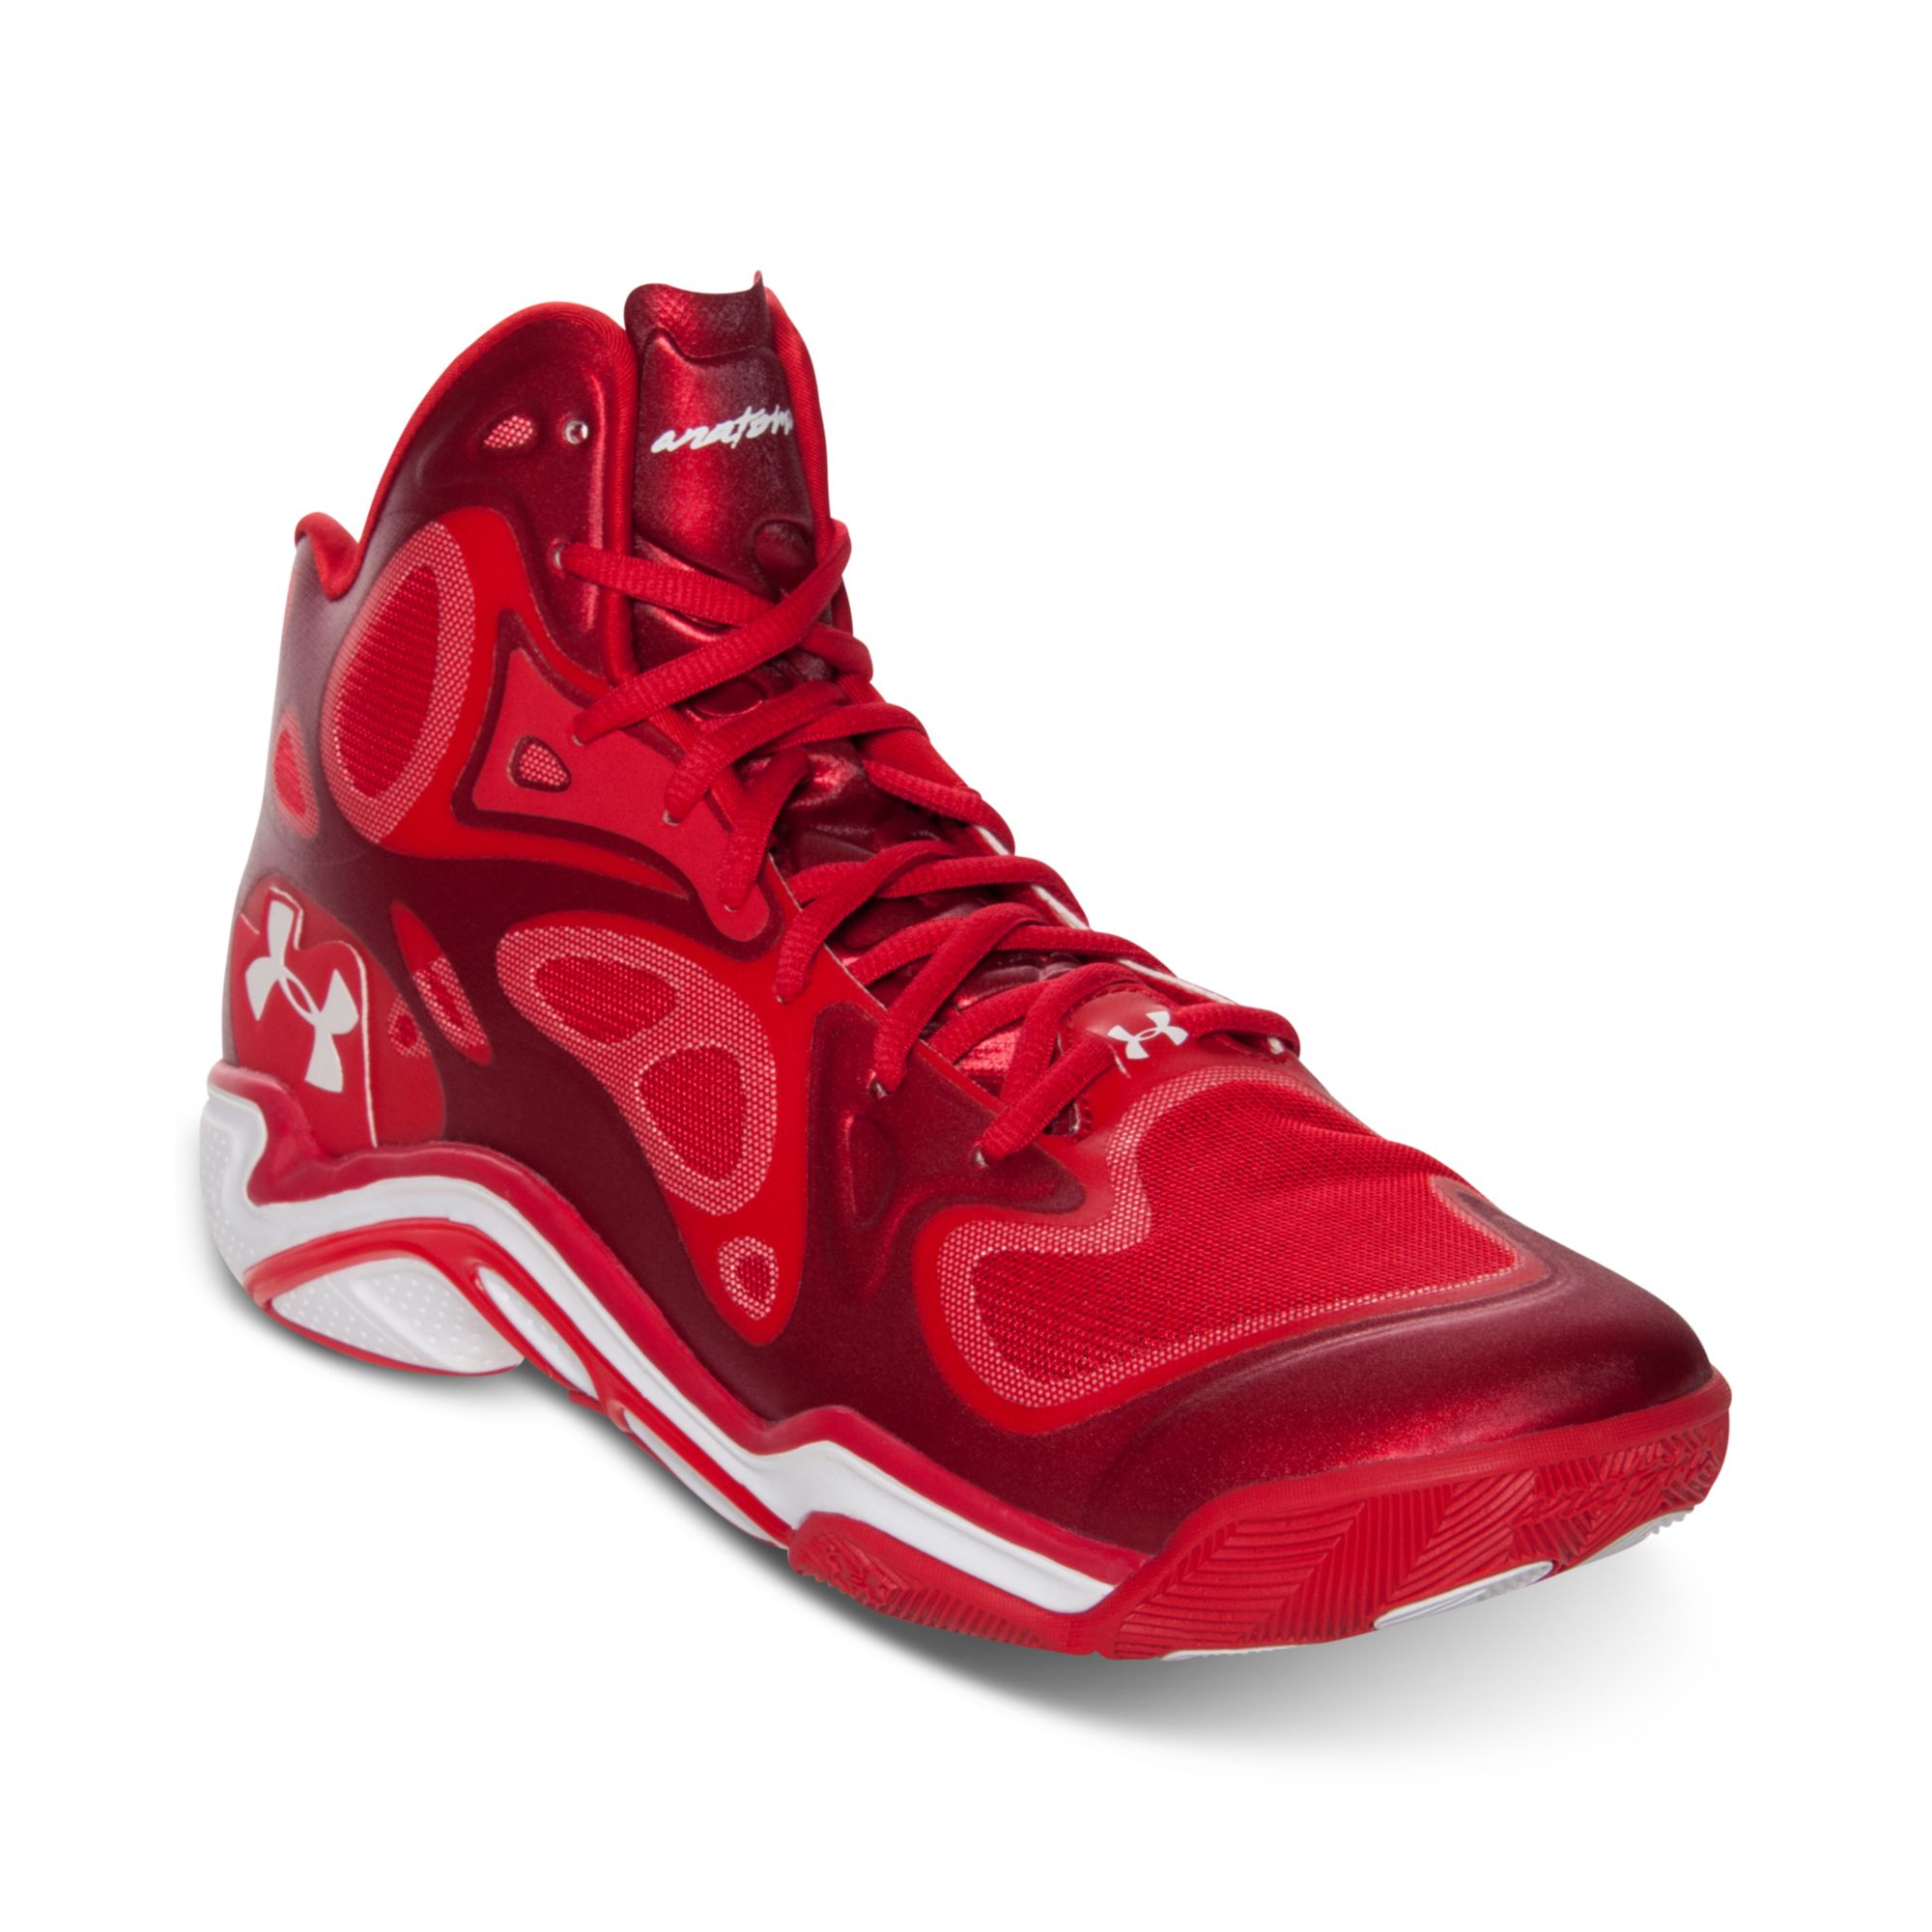 ca4bcd7dd1e ... Lyst - Under Armour Mens Micro G Anatomix Spawn Basketball S low priced  049b5 6f0f5  Under armour curry 2 black white ...